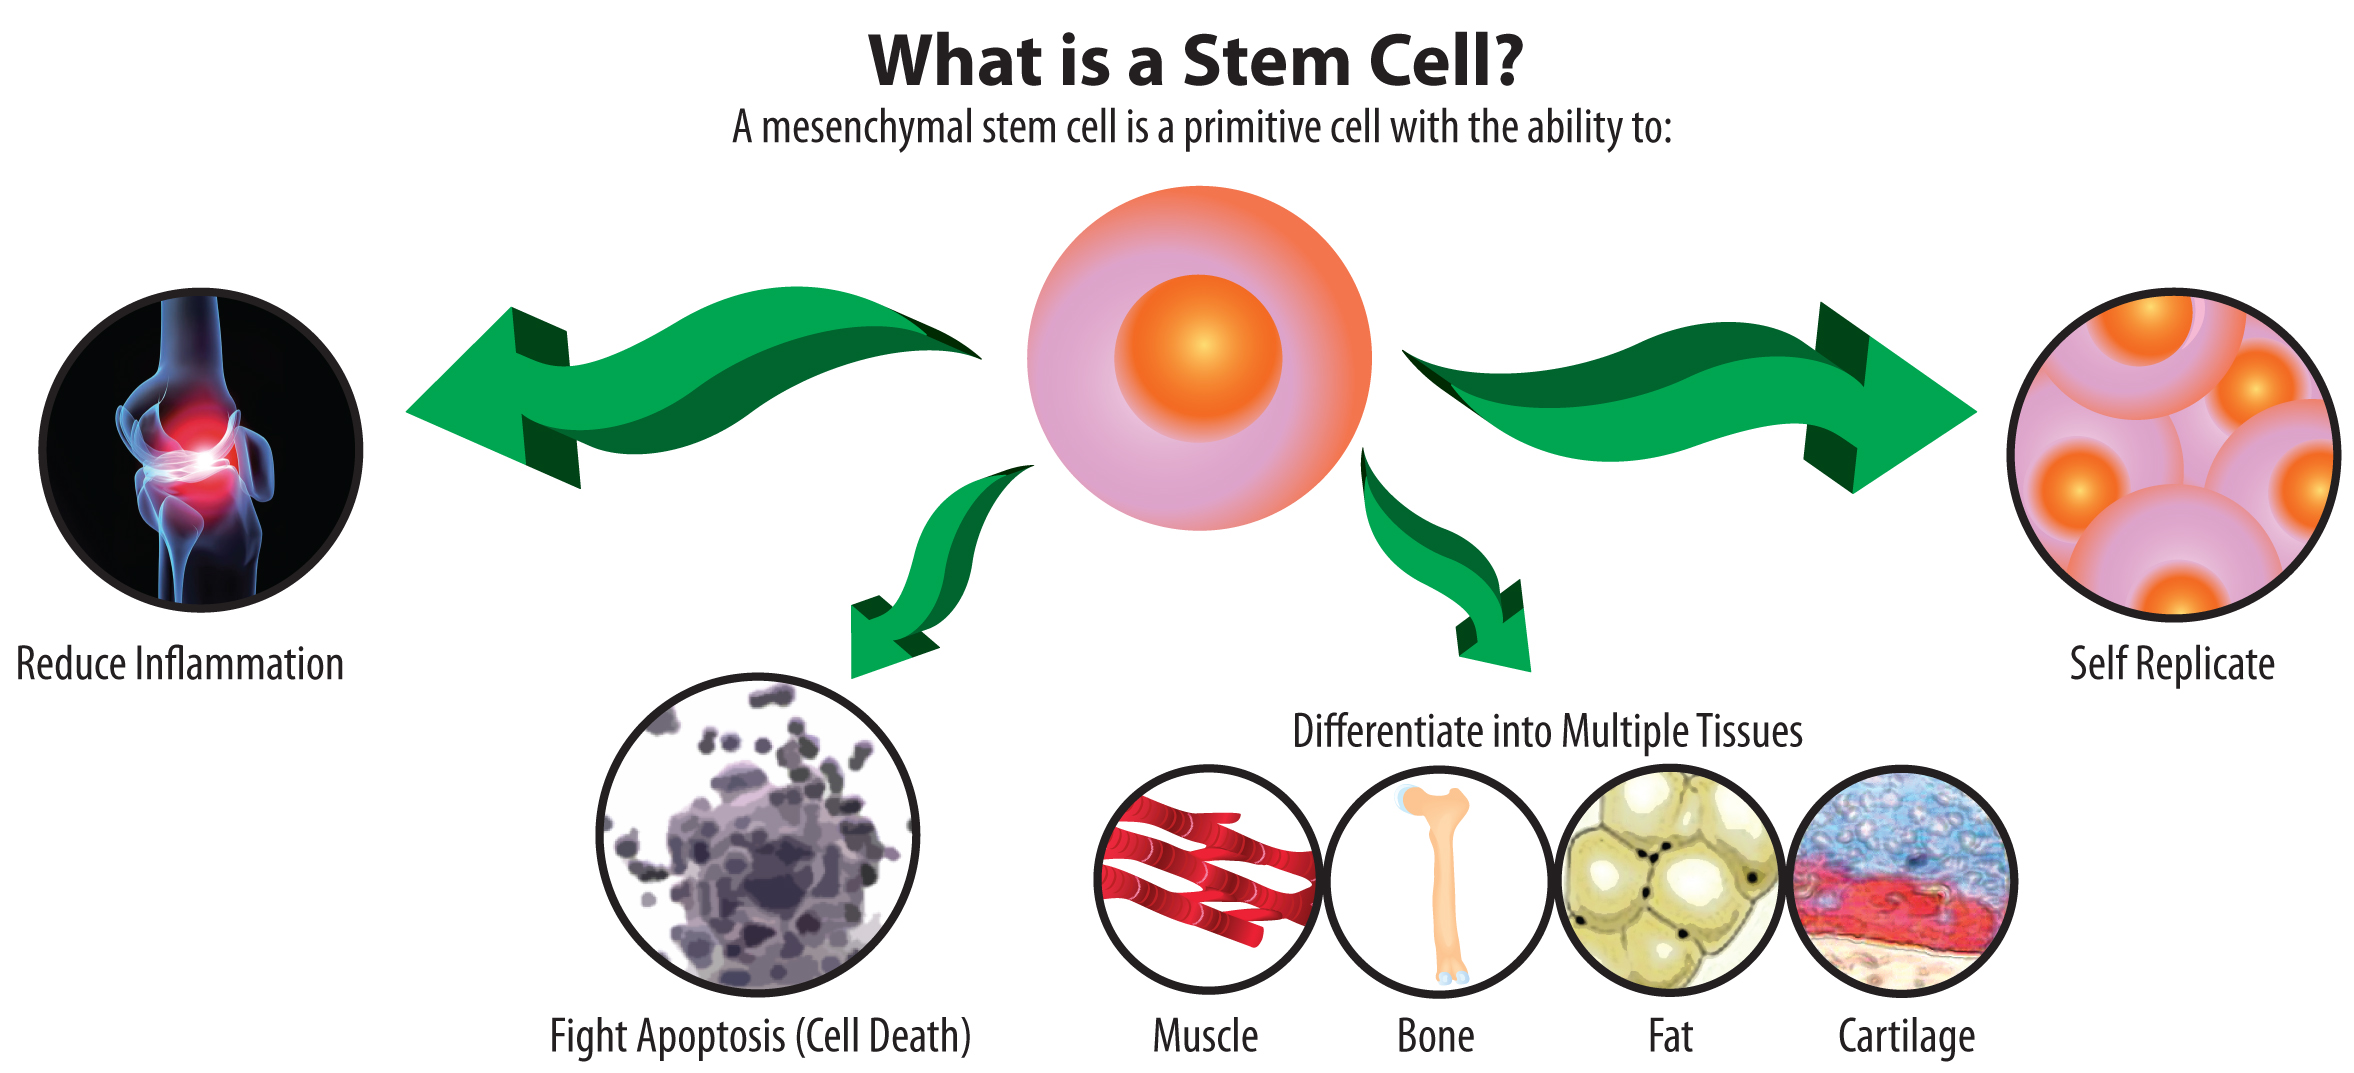 the remarkable abilites of stem cells Embryonic cells that have the potential for unlimited renewal and have the ability to develop into different kinds of mature cells if they are transplanted to different sites are often called embryonic stem cells.